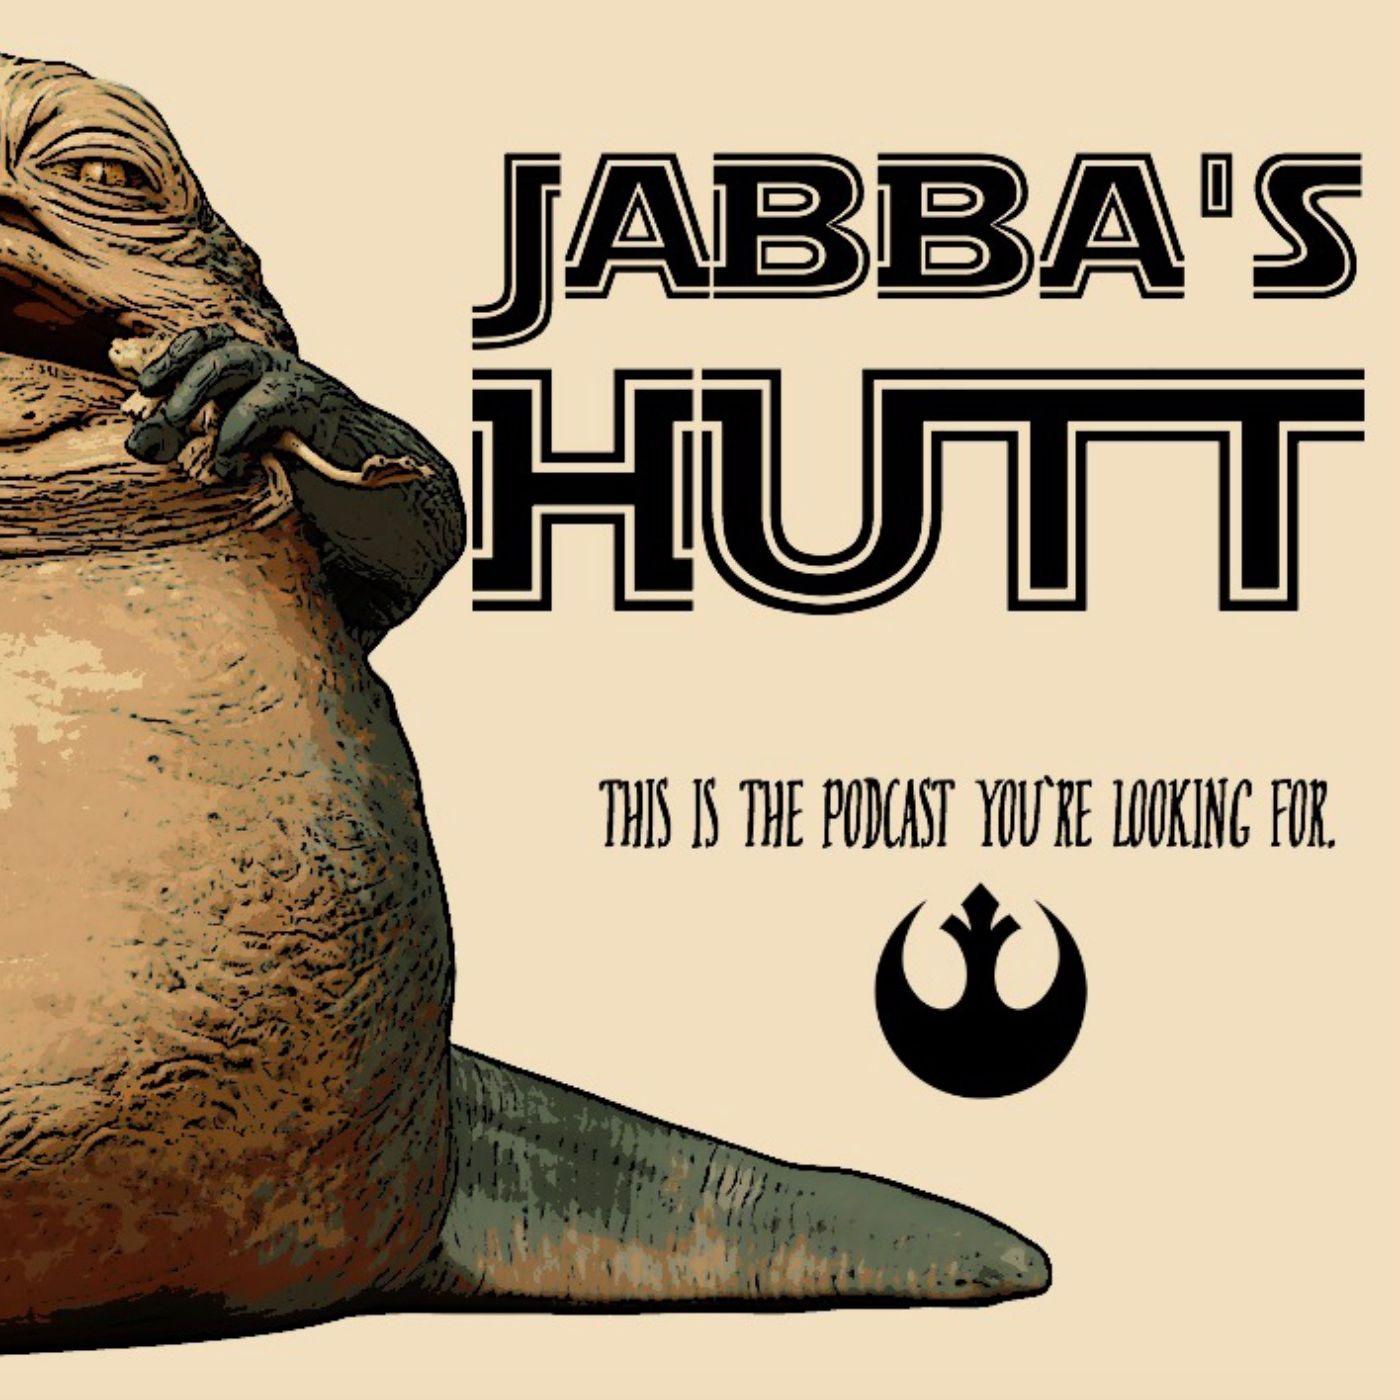 Jabba's Hutt Podcast (Star Wars)